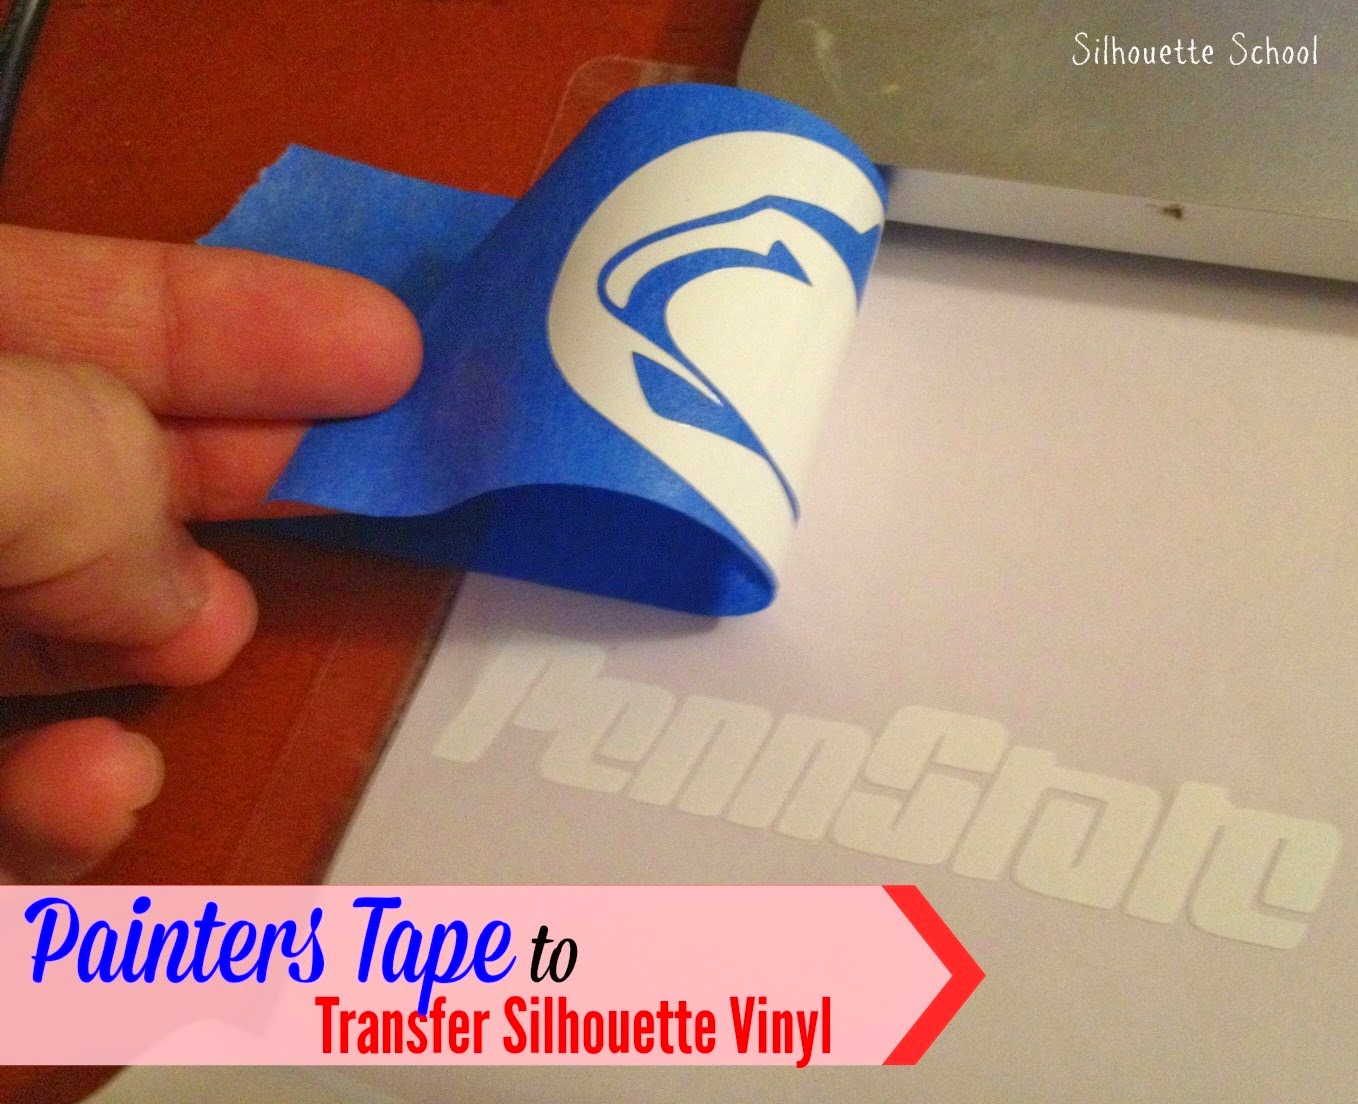 Painters tape, Painter's tape, Silhouette, crafting, transfer tape